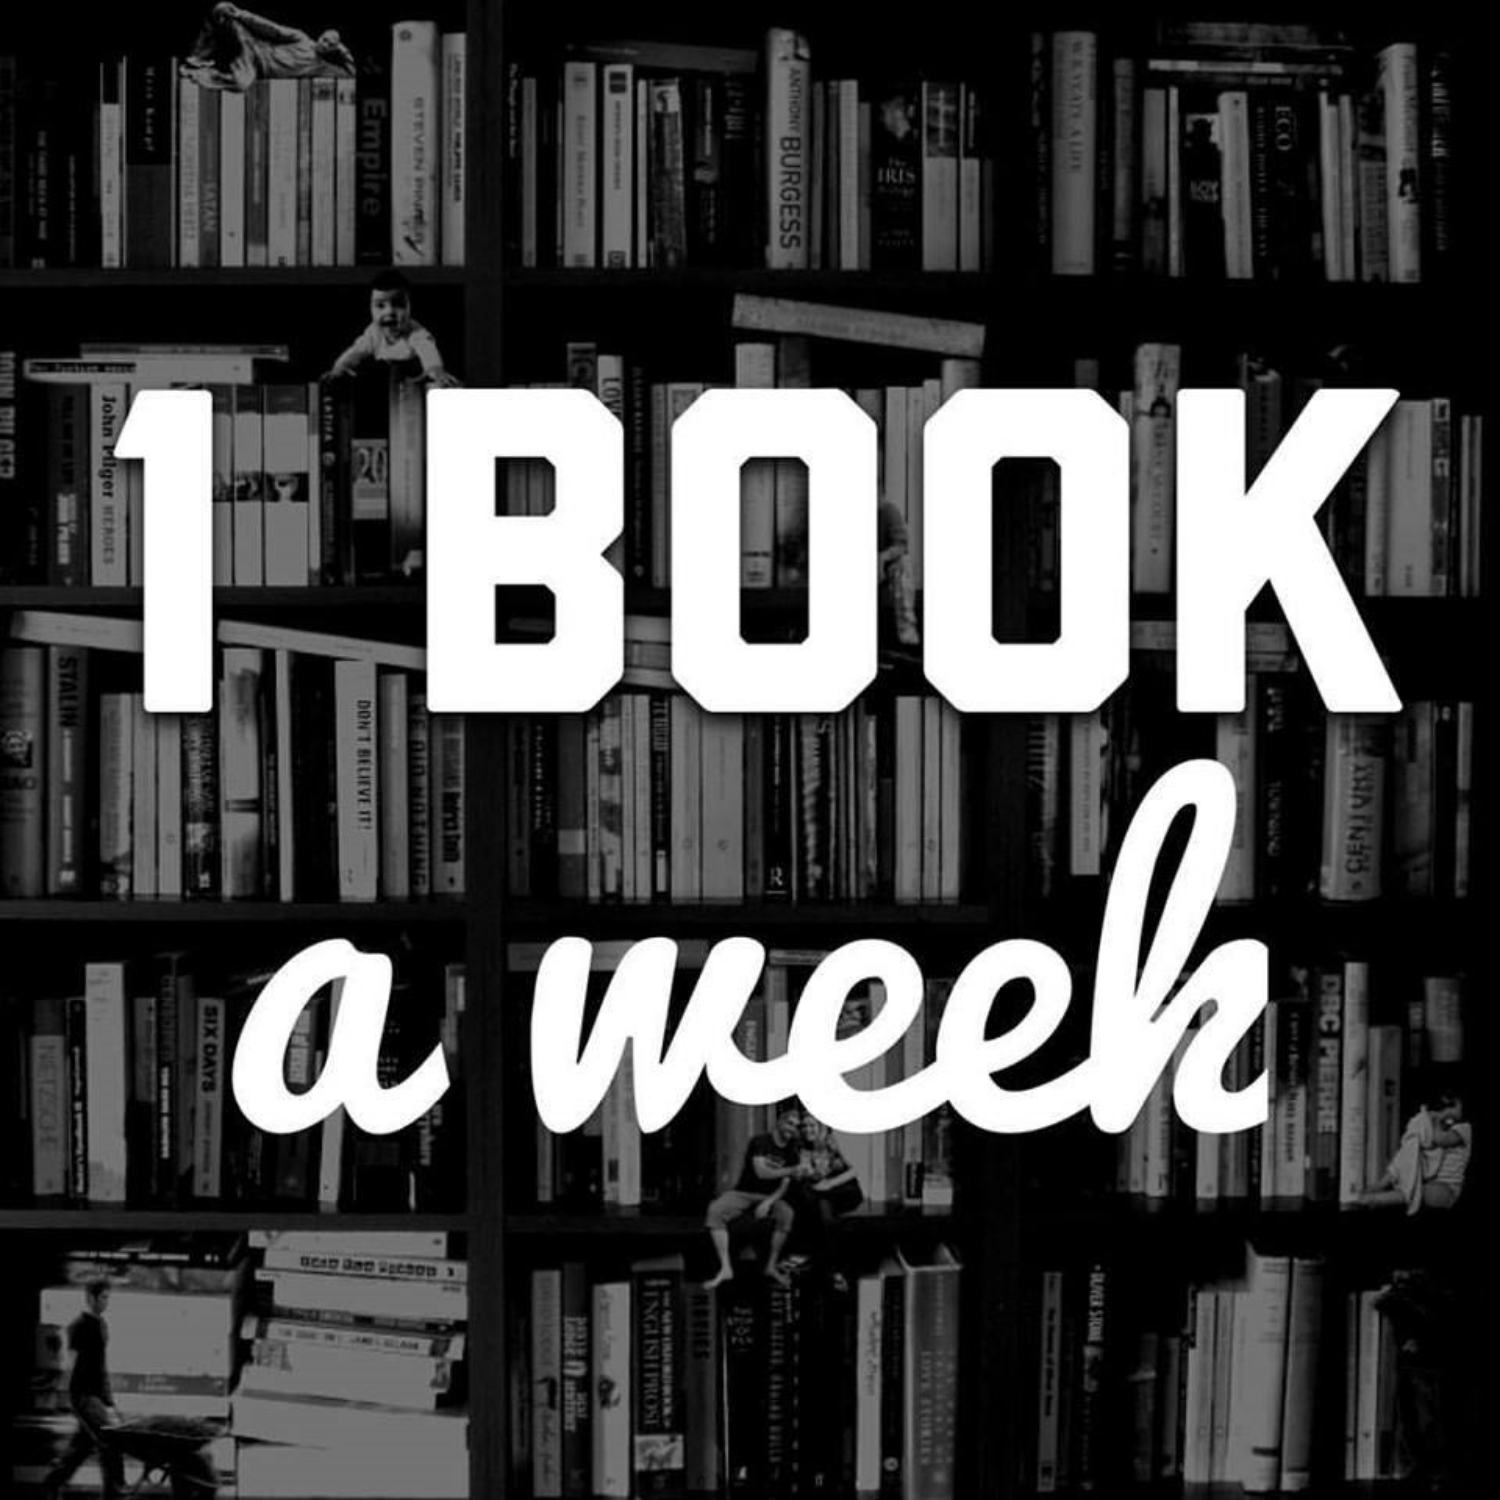 One Book a Week